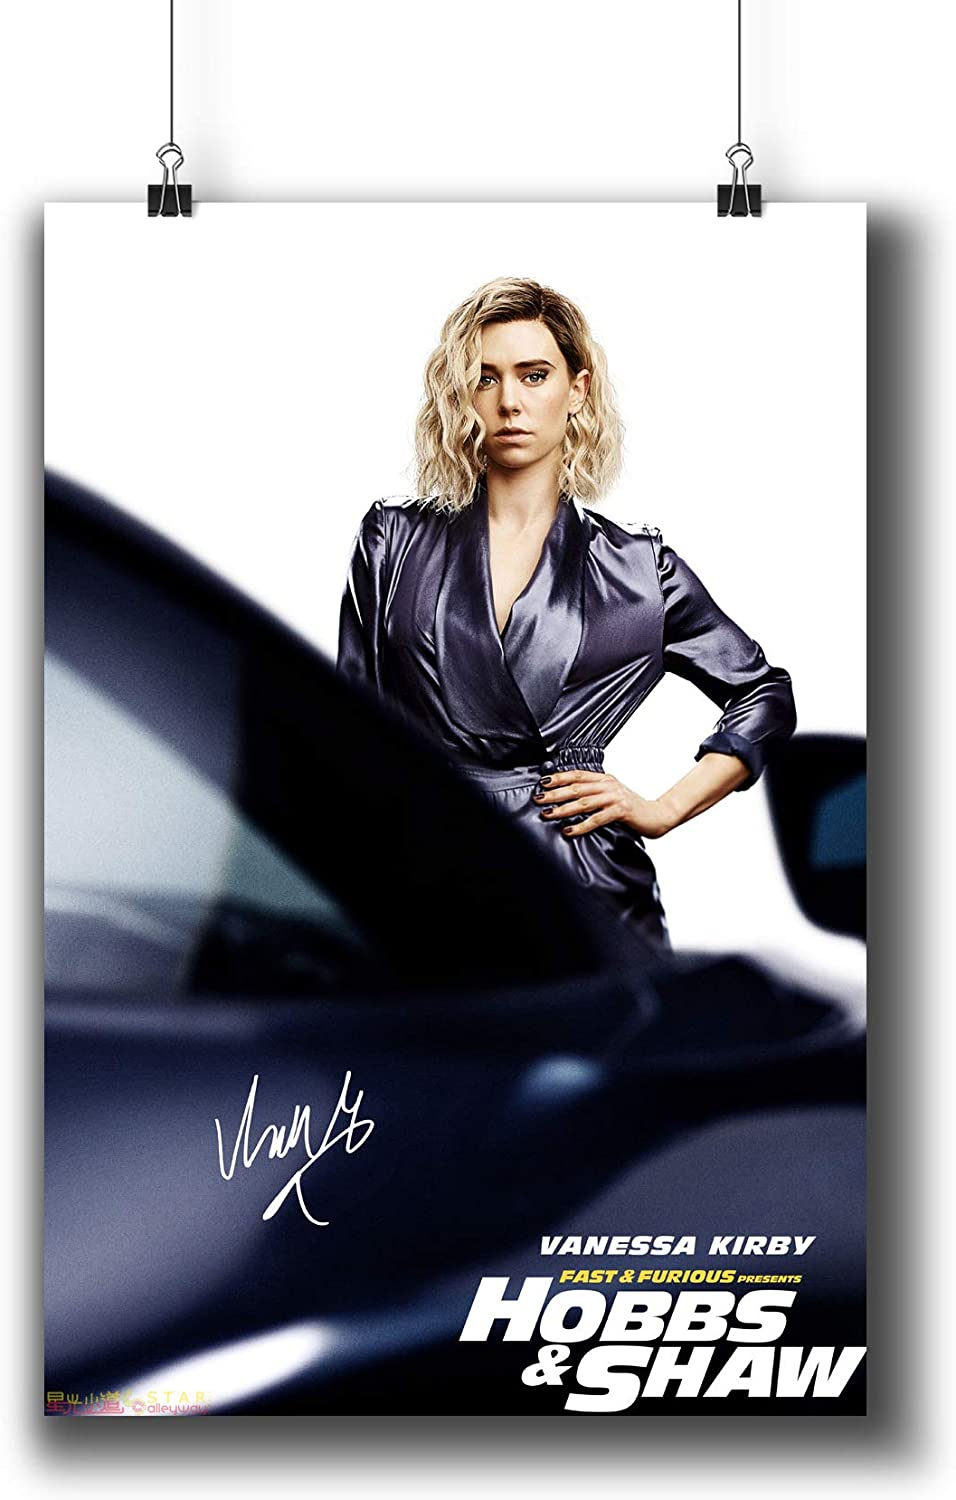 PEYTON LIST AUTOGRAPHED SIGNED A4 PP POSTER PHOTO PRINT